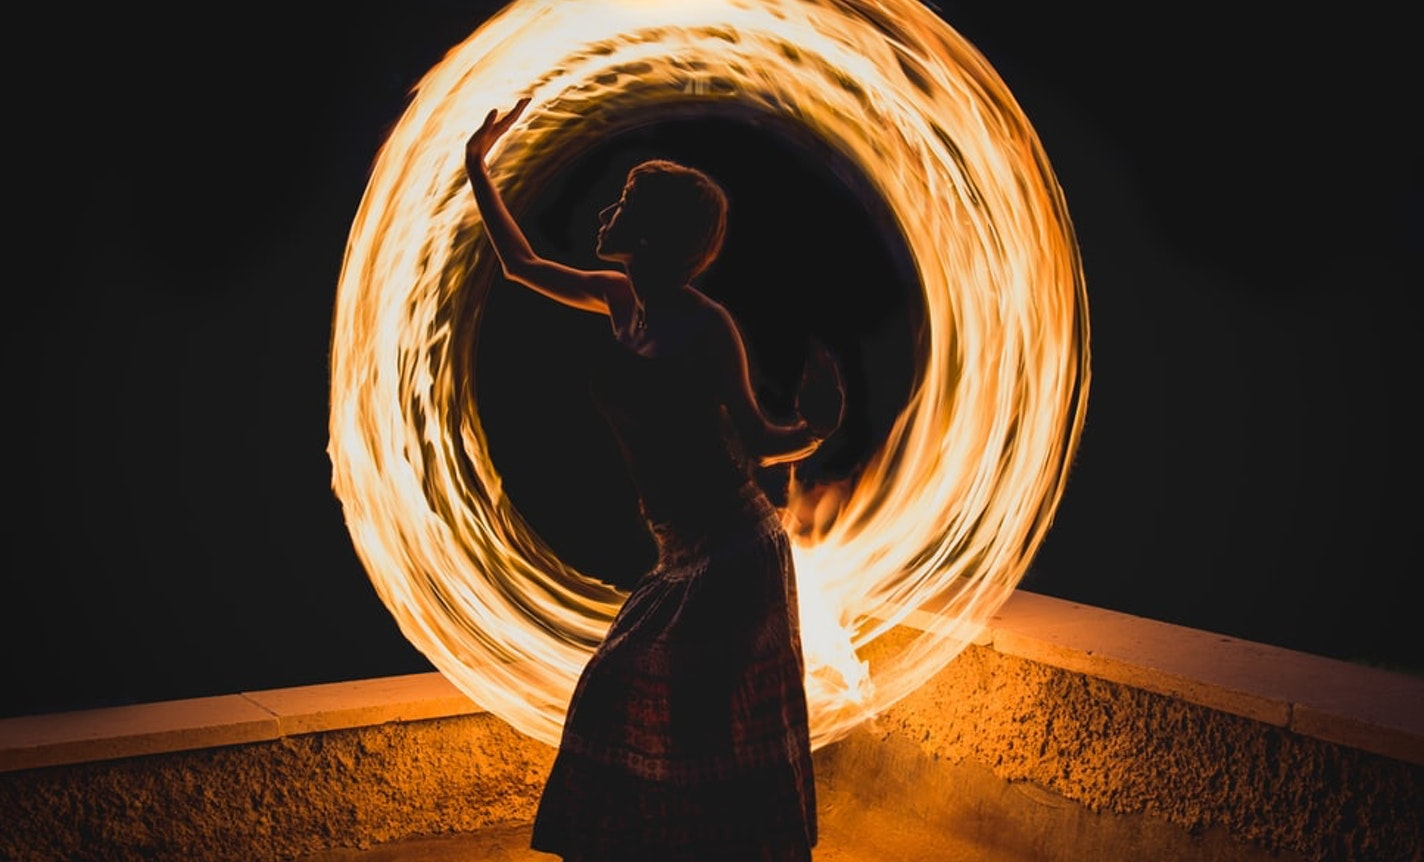 Crossing the Portal Back Into the World: A Conscious Dance